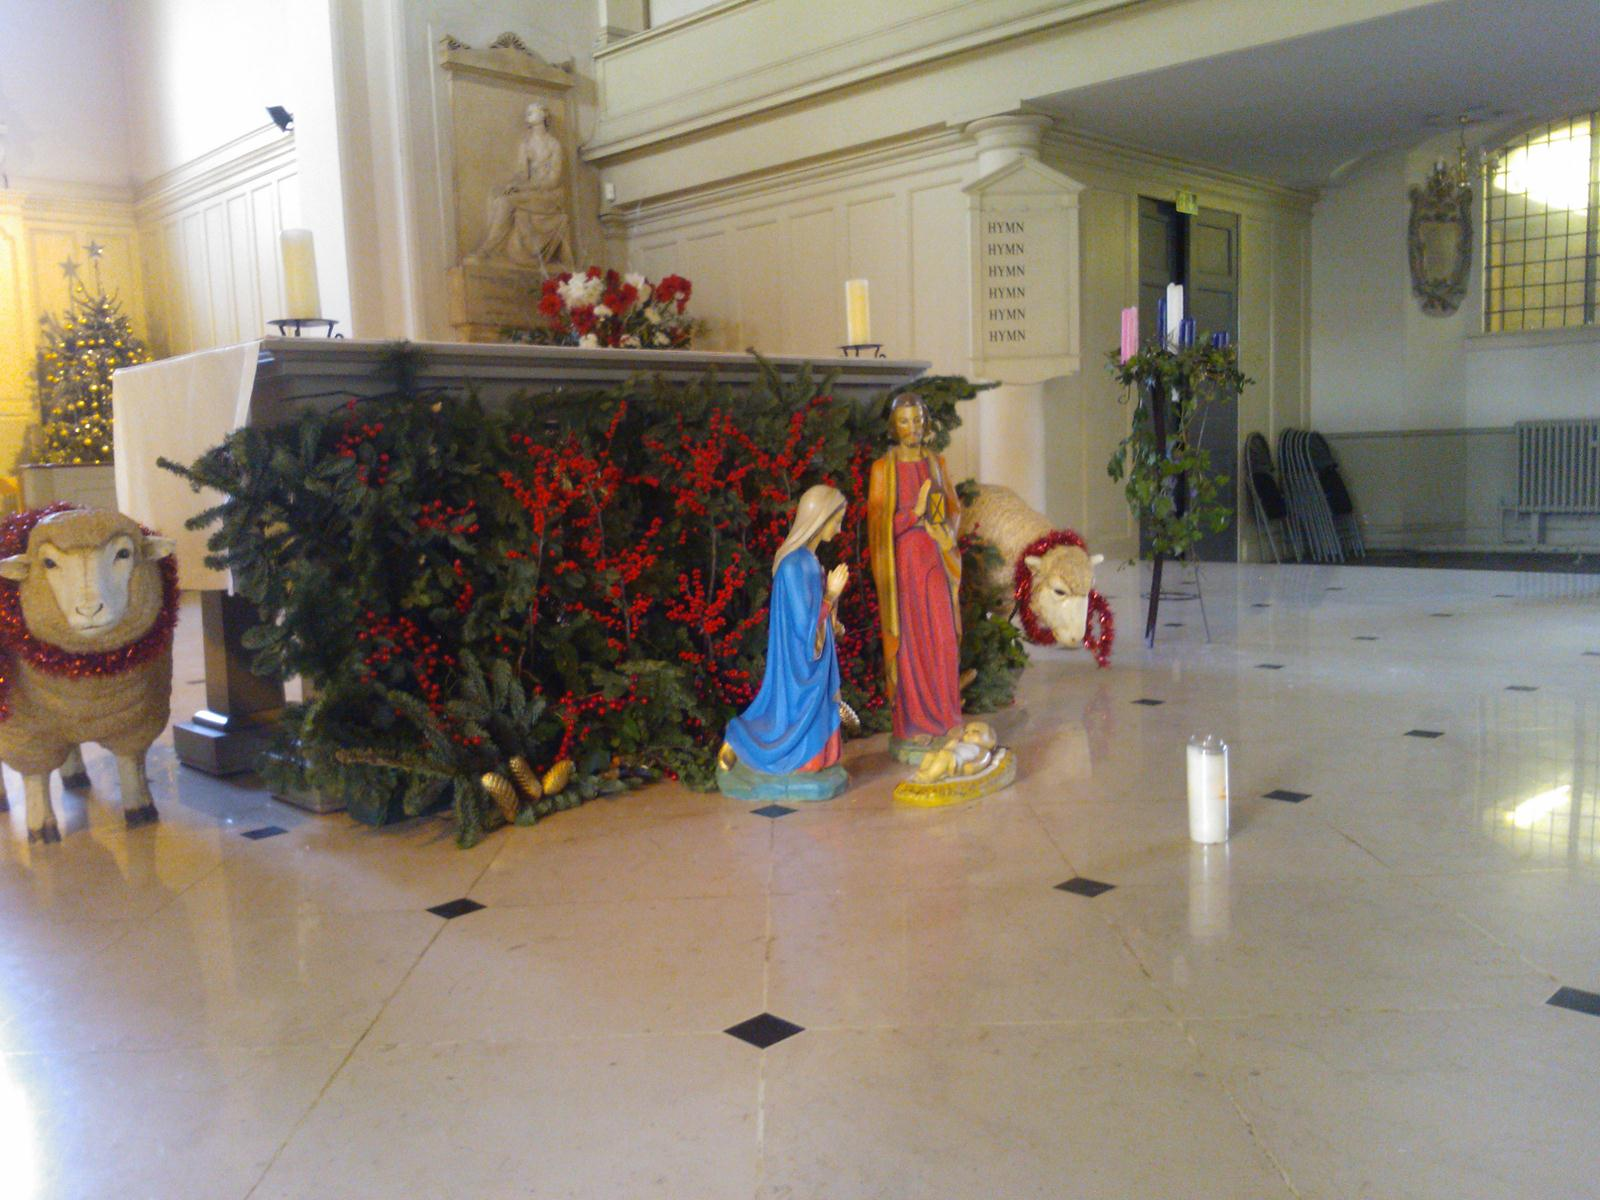 The altar at St John's Wood Church at Christmas, decked in green and red with a nativity scene in front of it